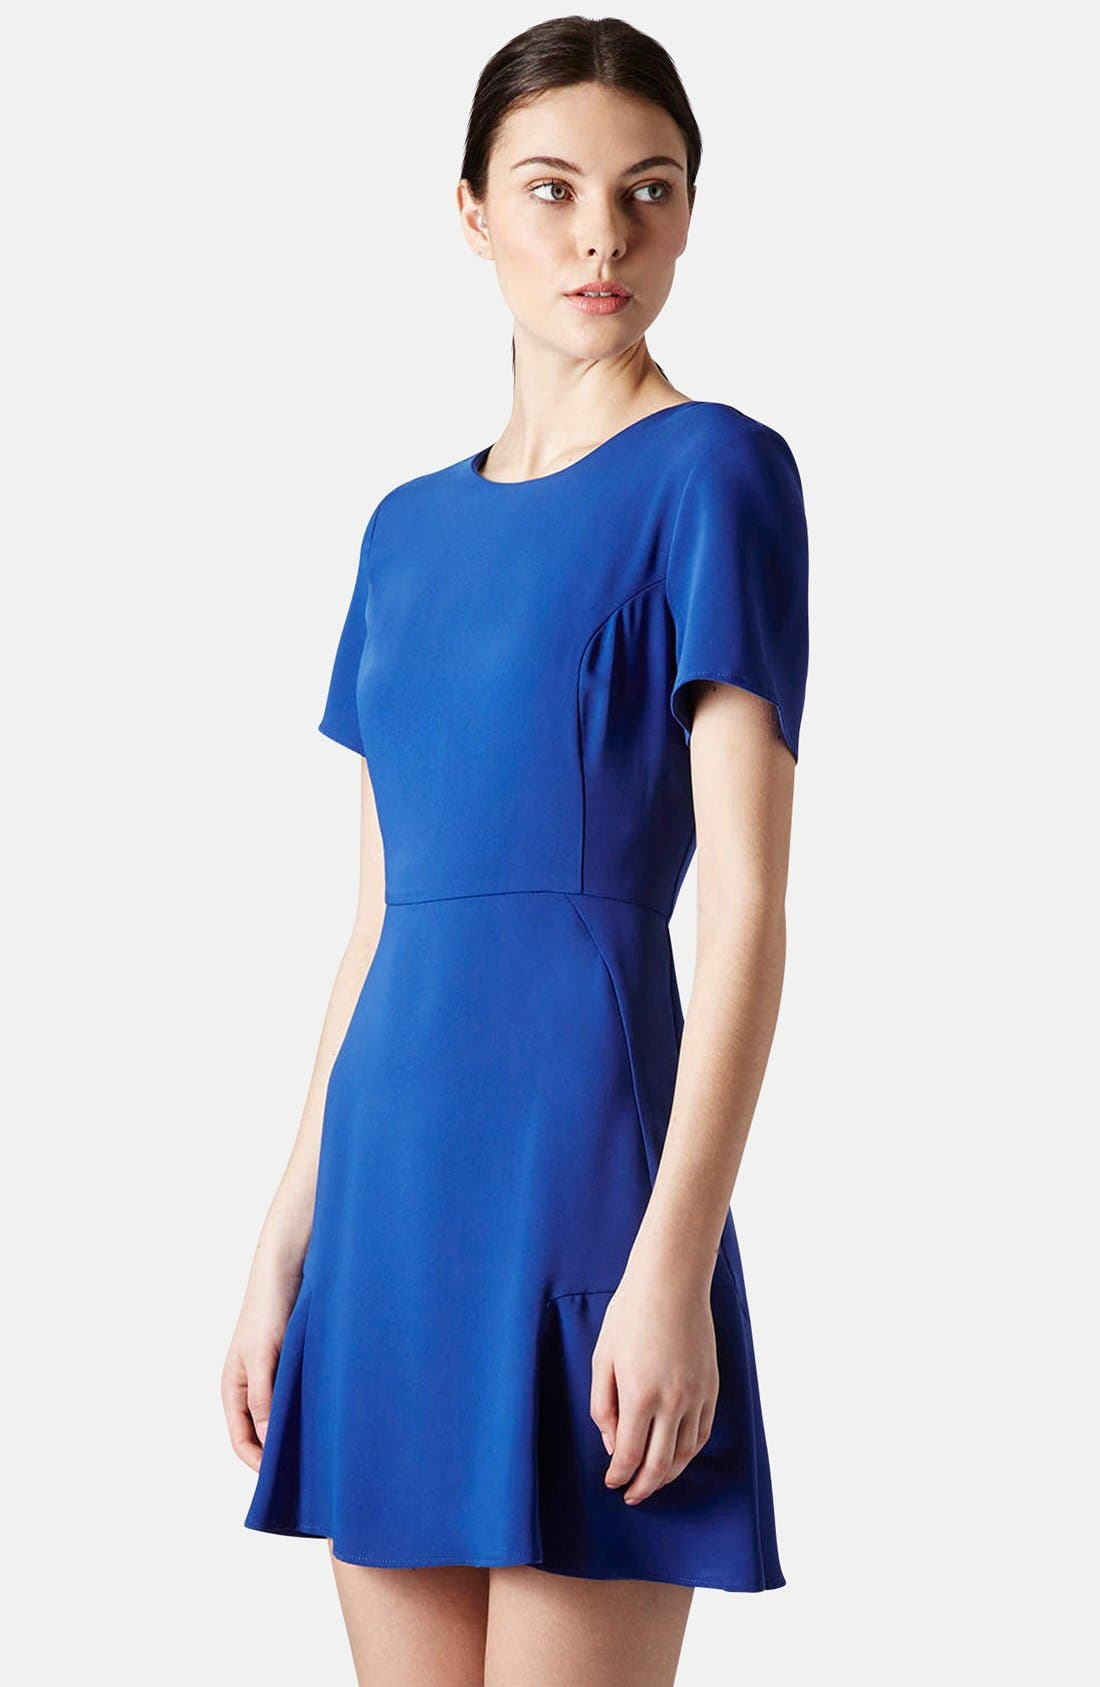 TOPSHOP, Crepe Fit & Flare Dress, Main thumbnail 1, color, 430